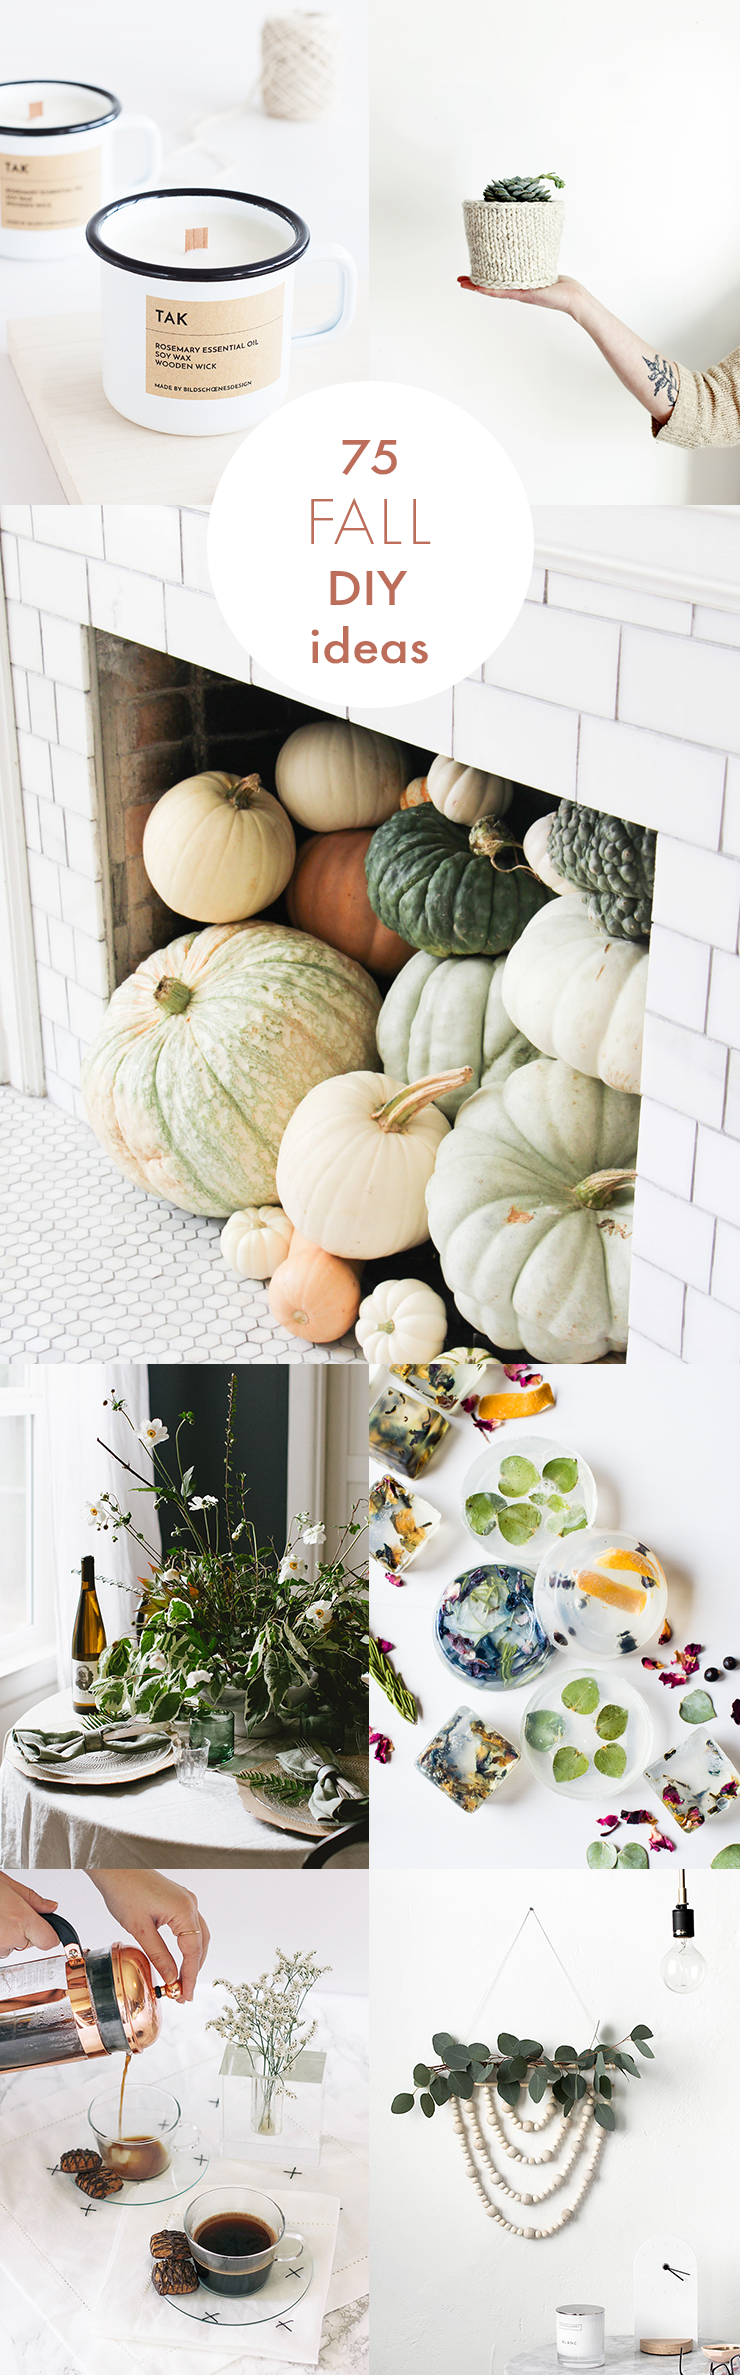 Eat, drink, decorate, and hygge your way into the season with these 75 cozy fall DIY projects.